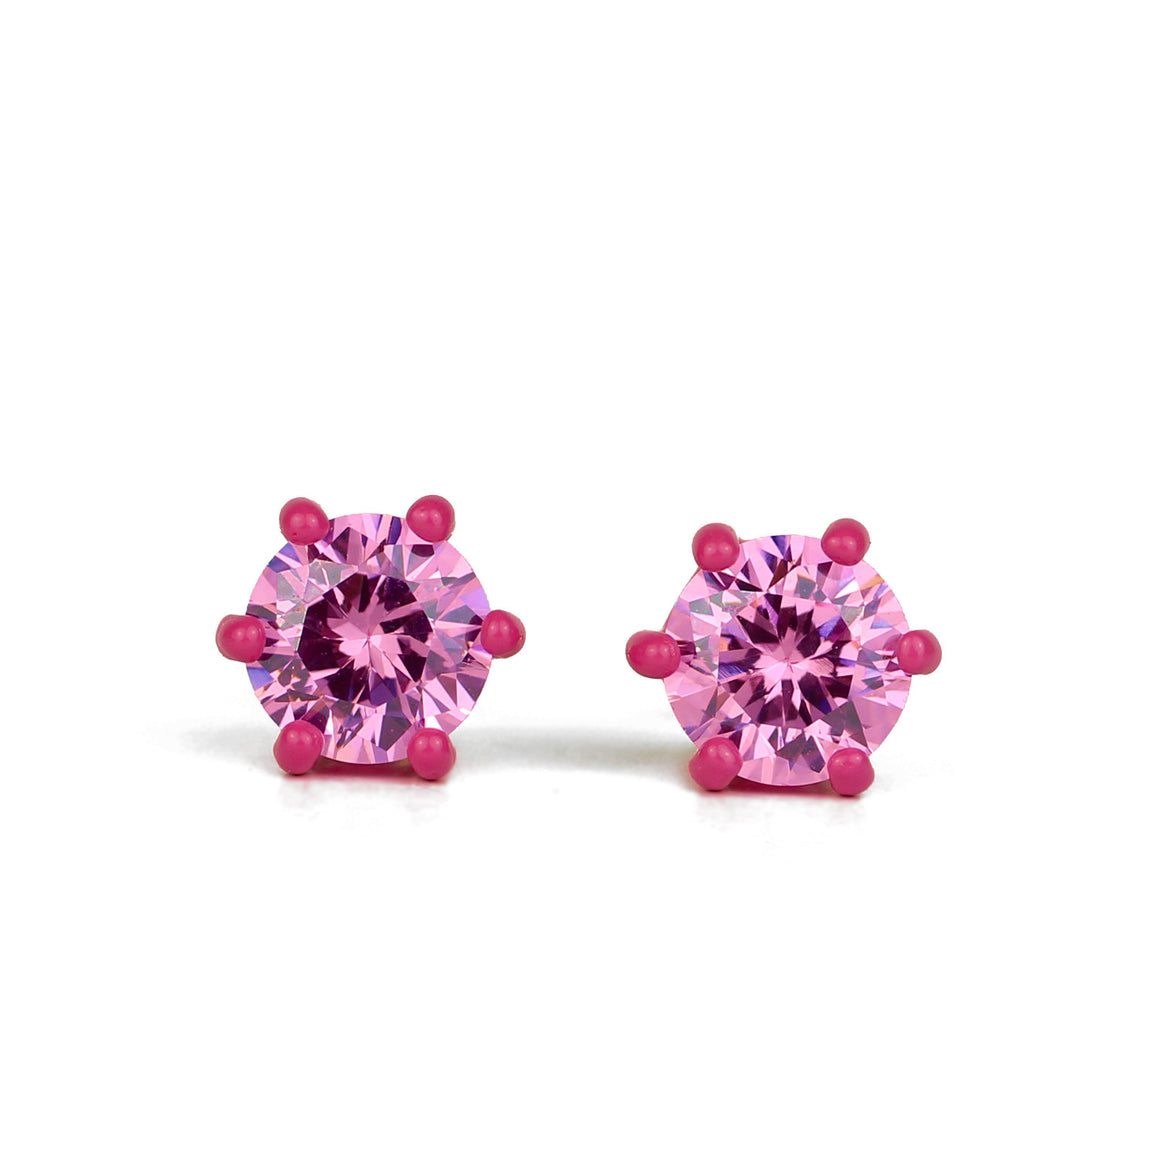 OMG Bling Earrings in Pink - 8 mm Round Stone